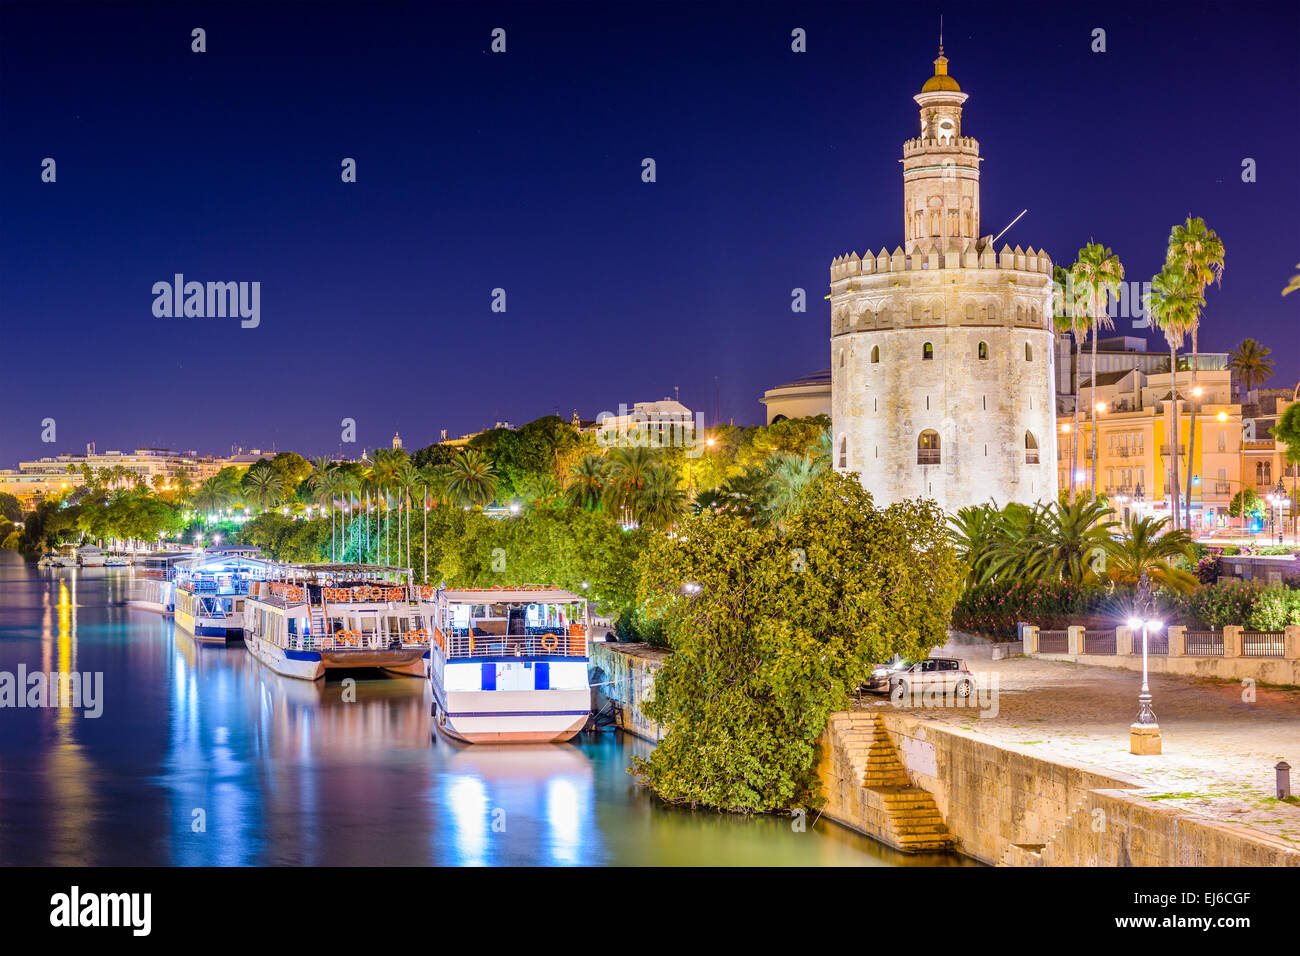 Seville, Spain at the Torre del Oro on the Guadalquivir River. - Stock Image